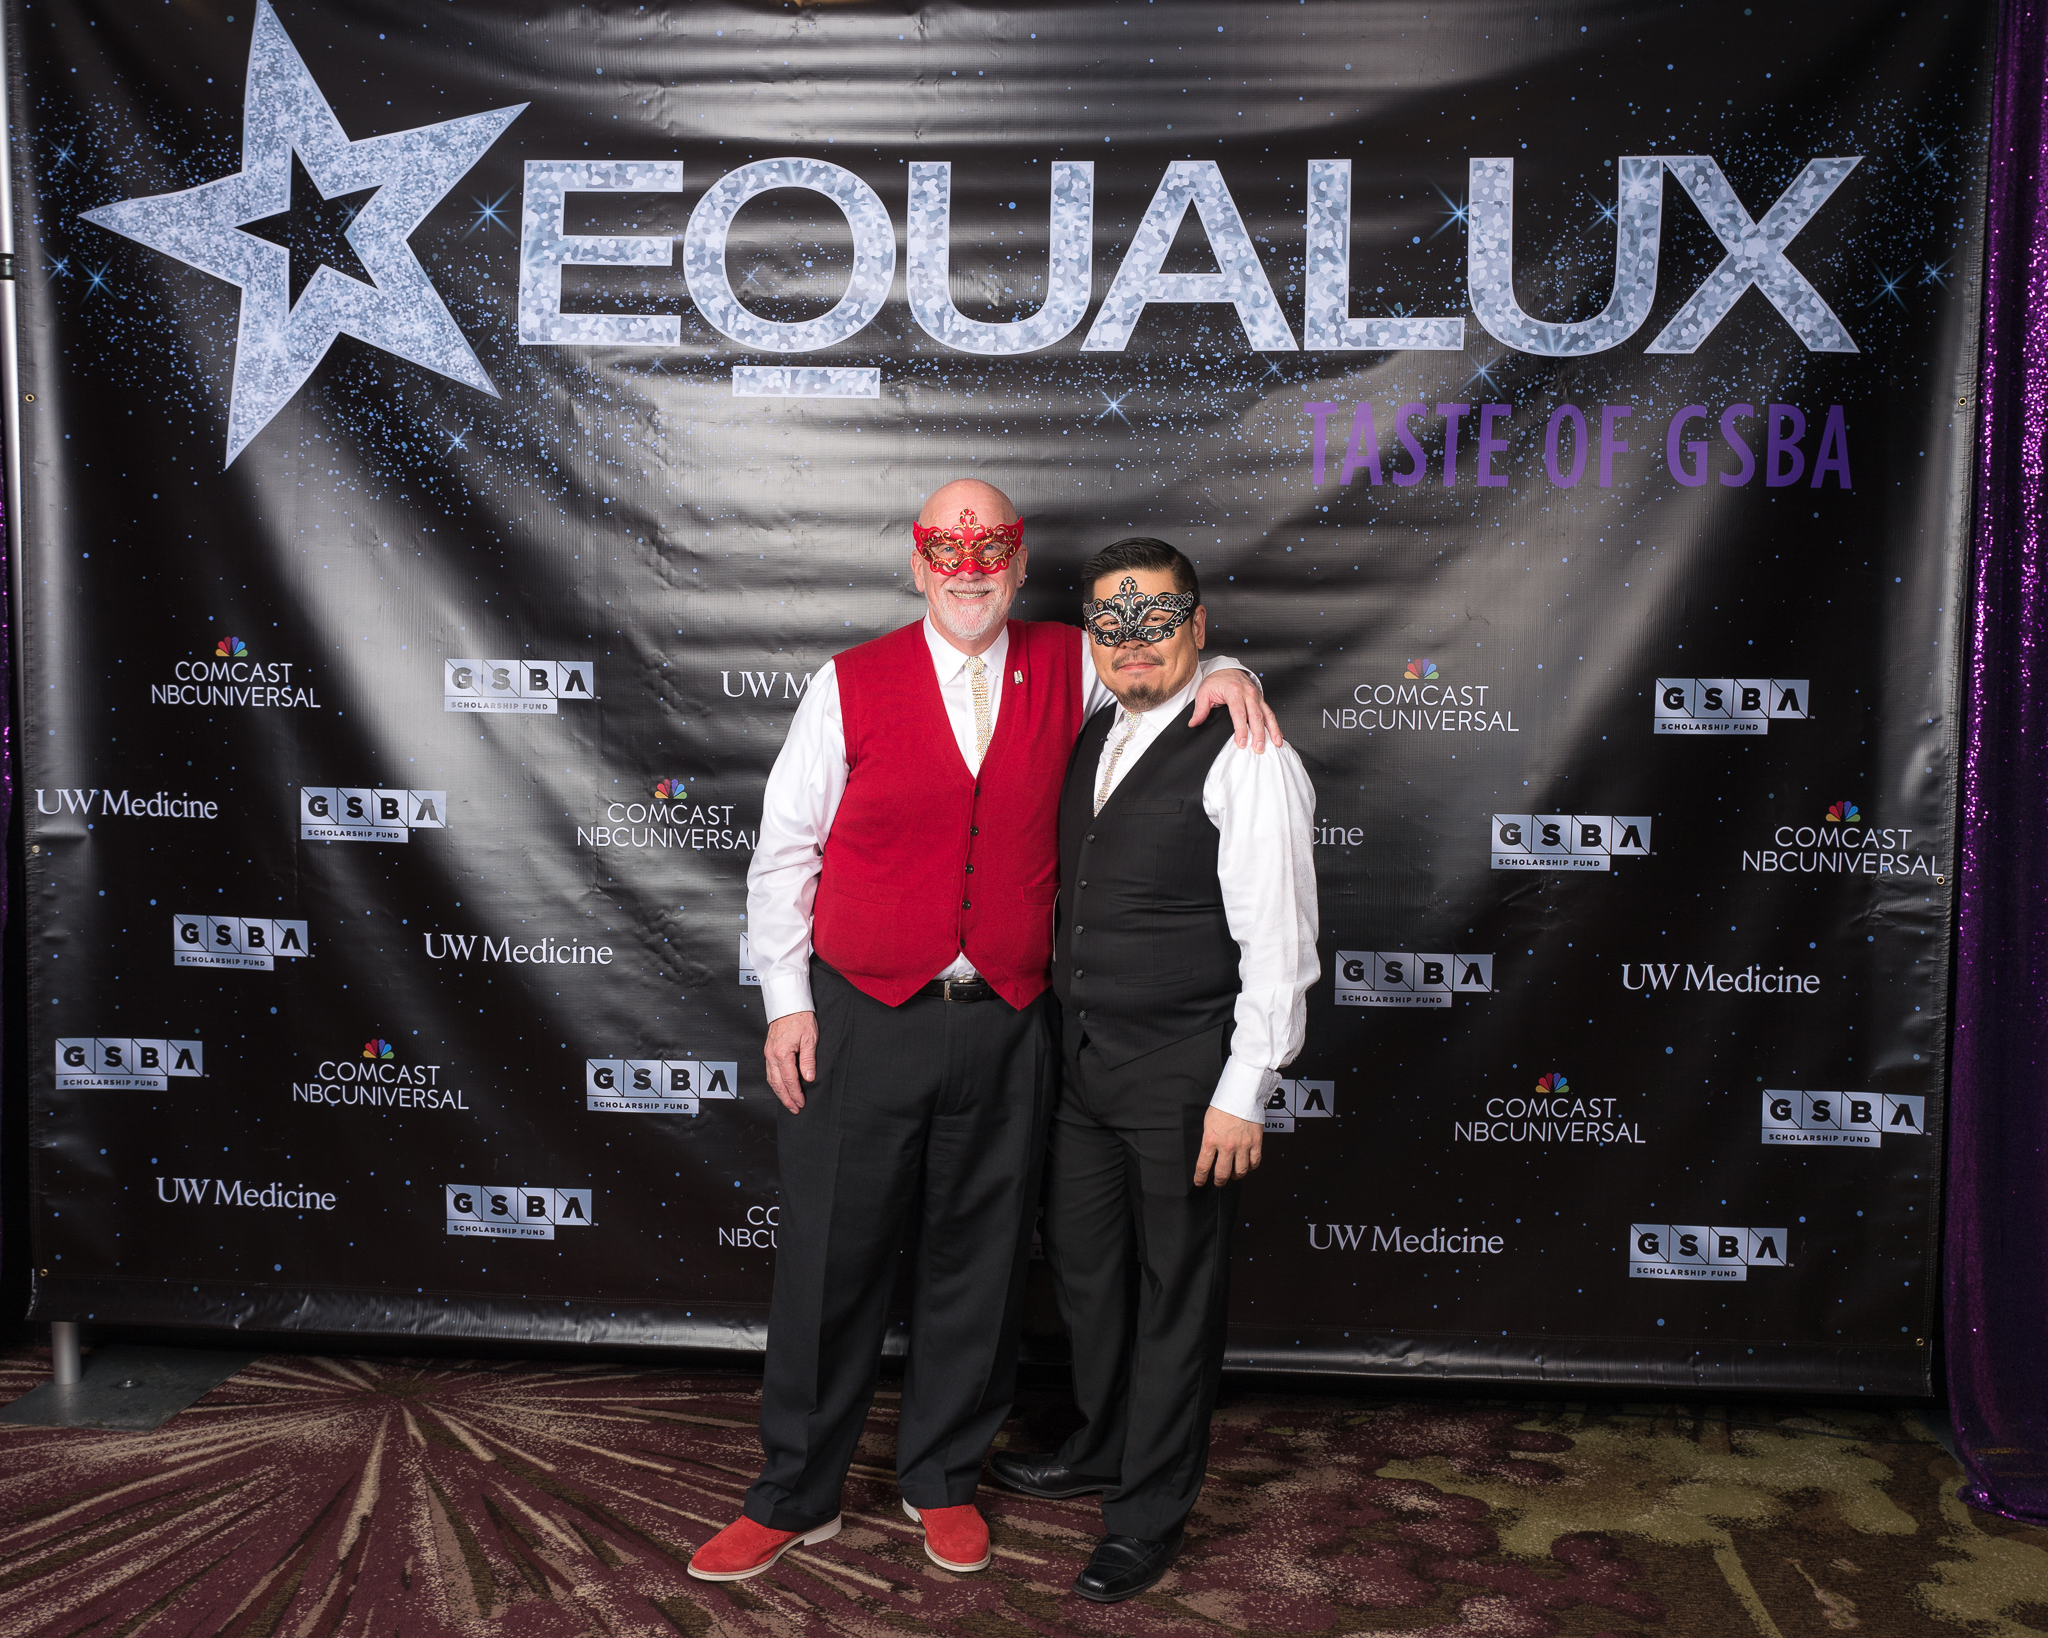 111718_GSBA EQUALUX at The Westin Seattle (Credit- Nate Gowdy)-17.jpg